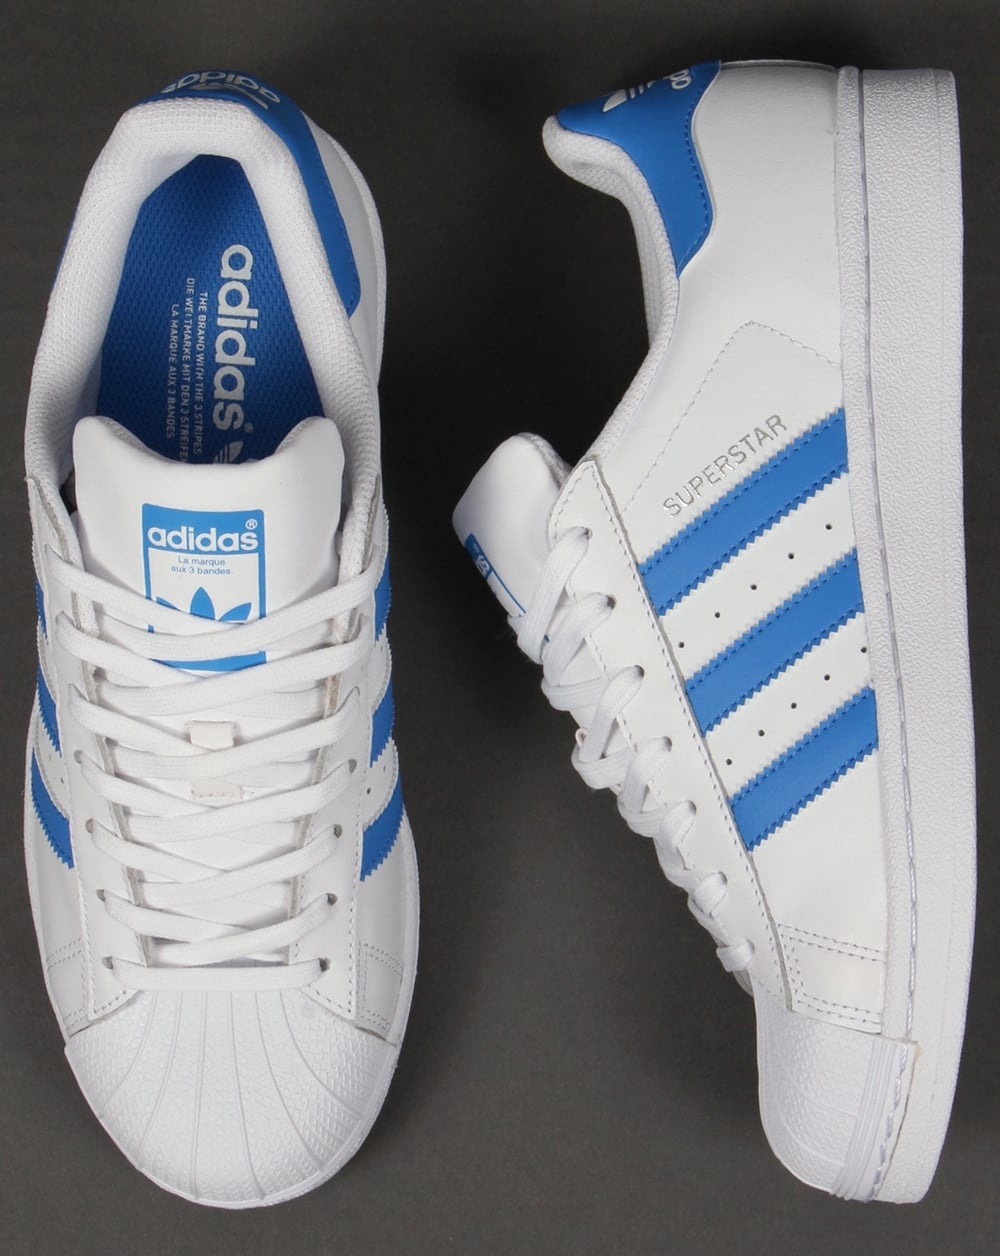 best cheap 648b3 f43fb promo code 3 ways to keep white adidas superstar shoes clean wikihow 20a2e  3a3d0 cheap adidas superstar trainers white ray blue 90376 ffd67